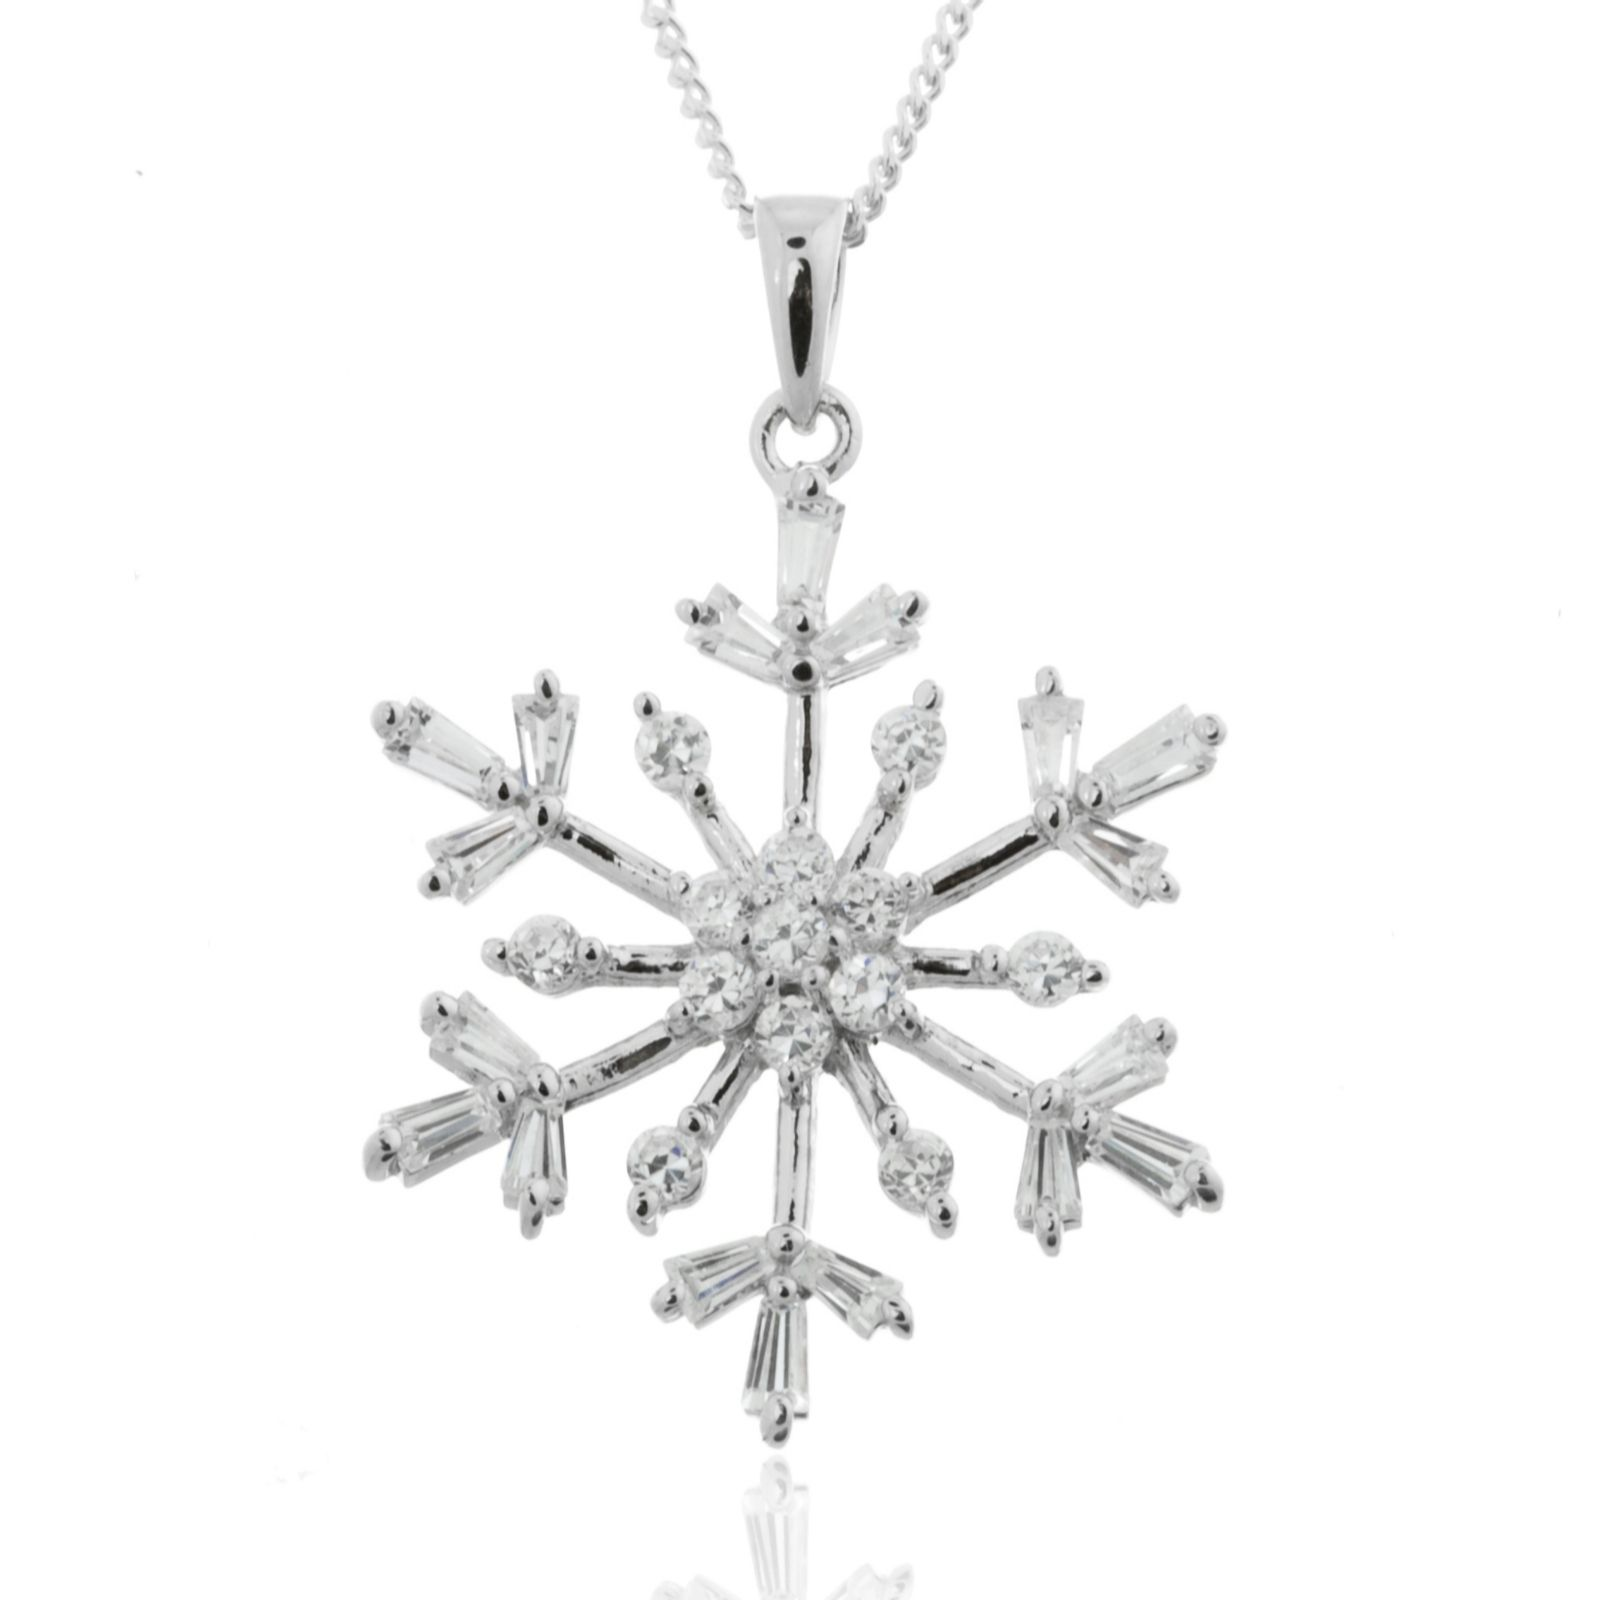 designs snowflake wallach products cherie pendant necklace diamond jewelry dori